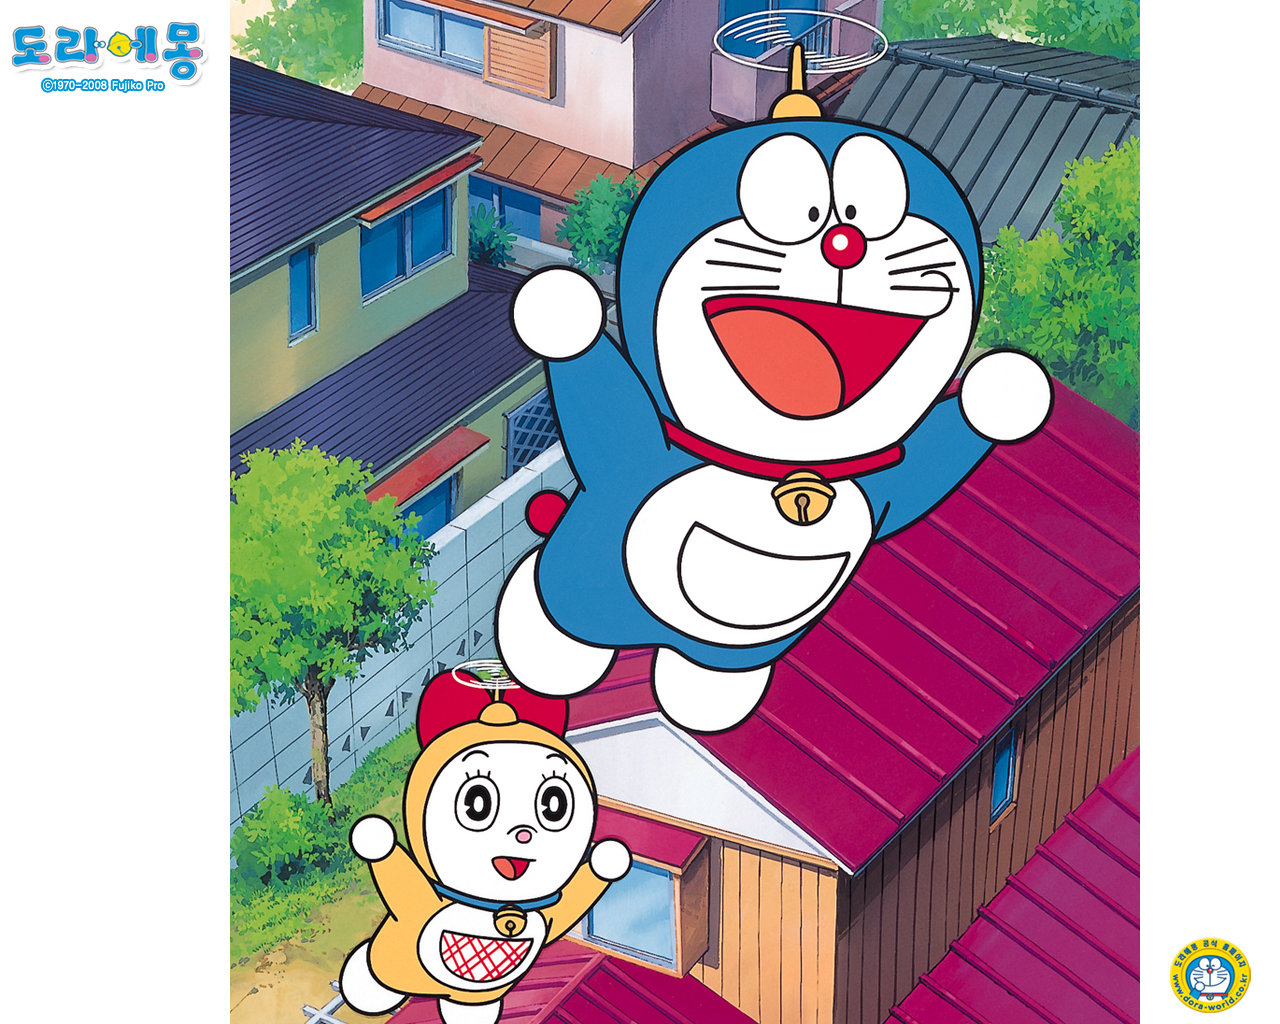 Download hd 1280x1024 Doraemon computer wallpaper ID:271487 for free